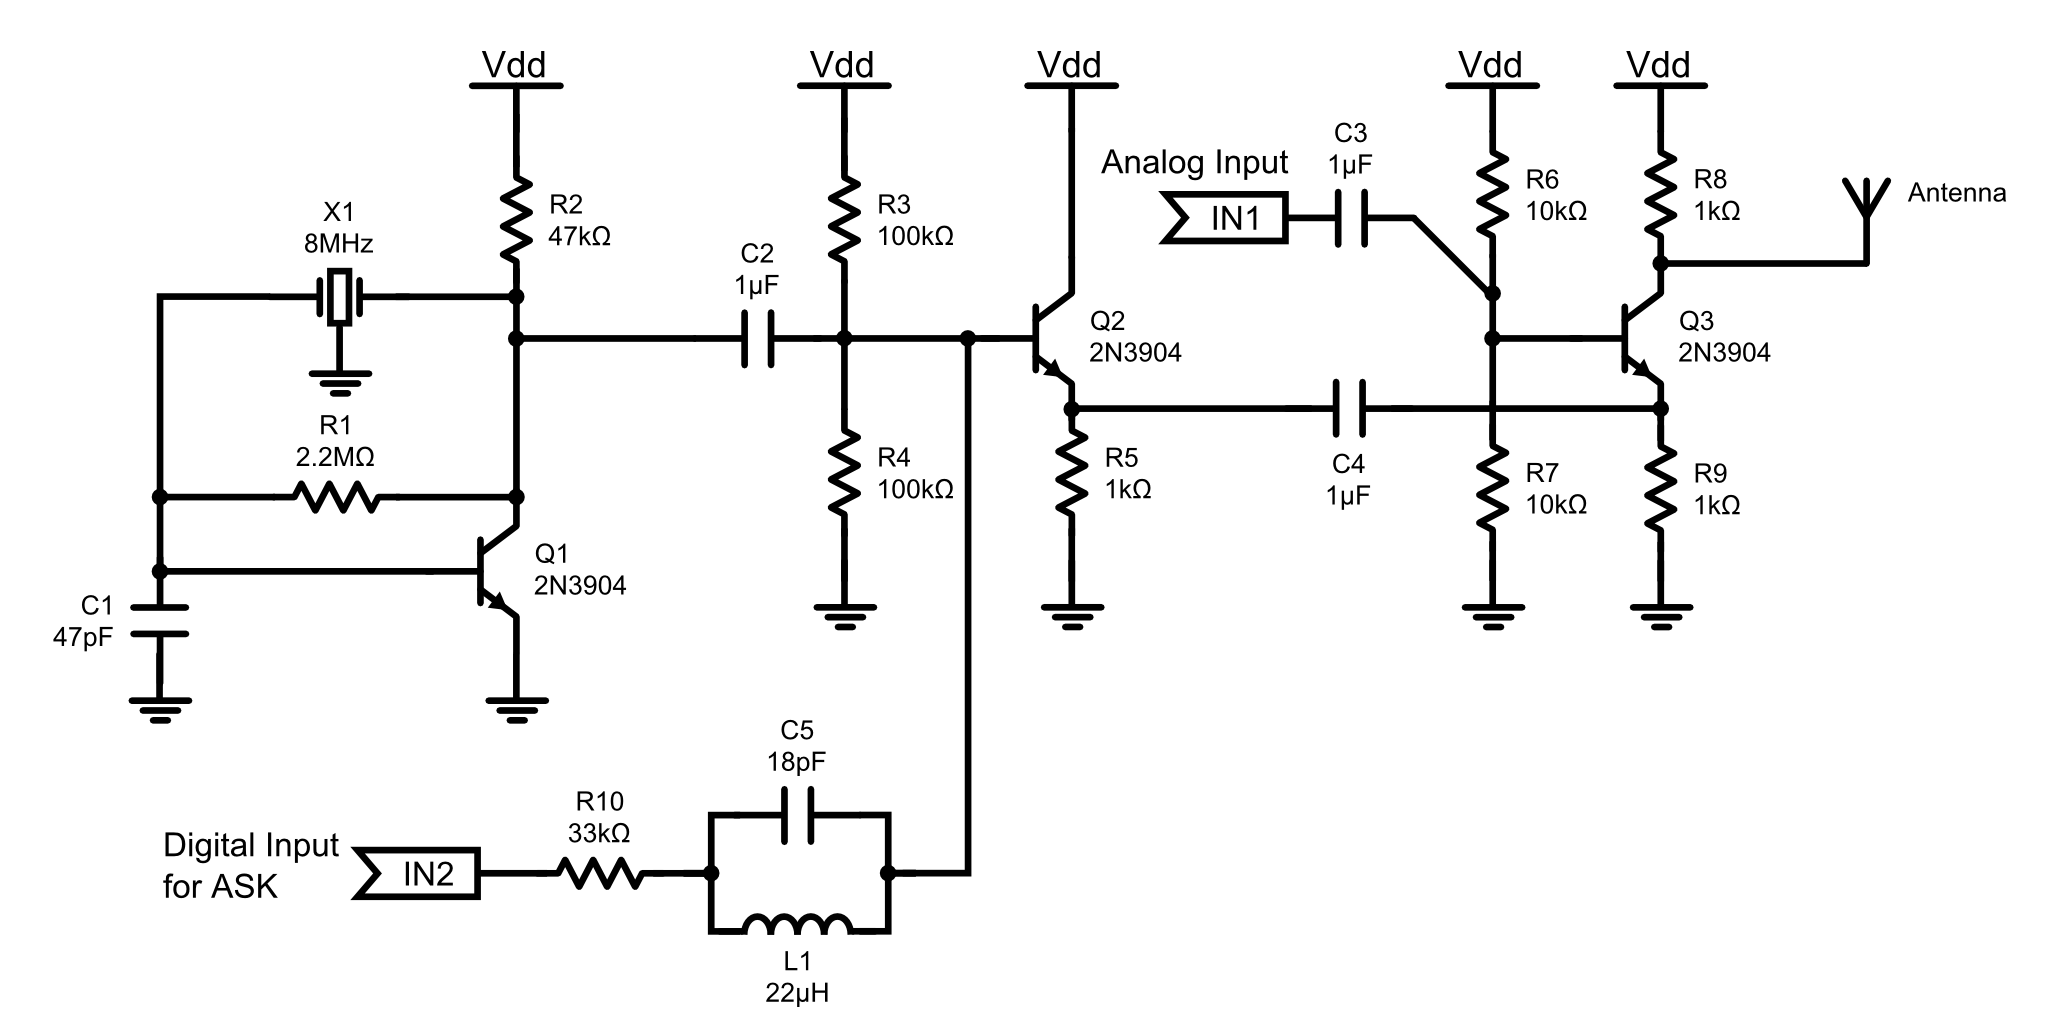 Fm Transmitter Circuit Schematic With Bfr90 - Wiring Diagram ... on